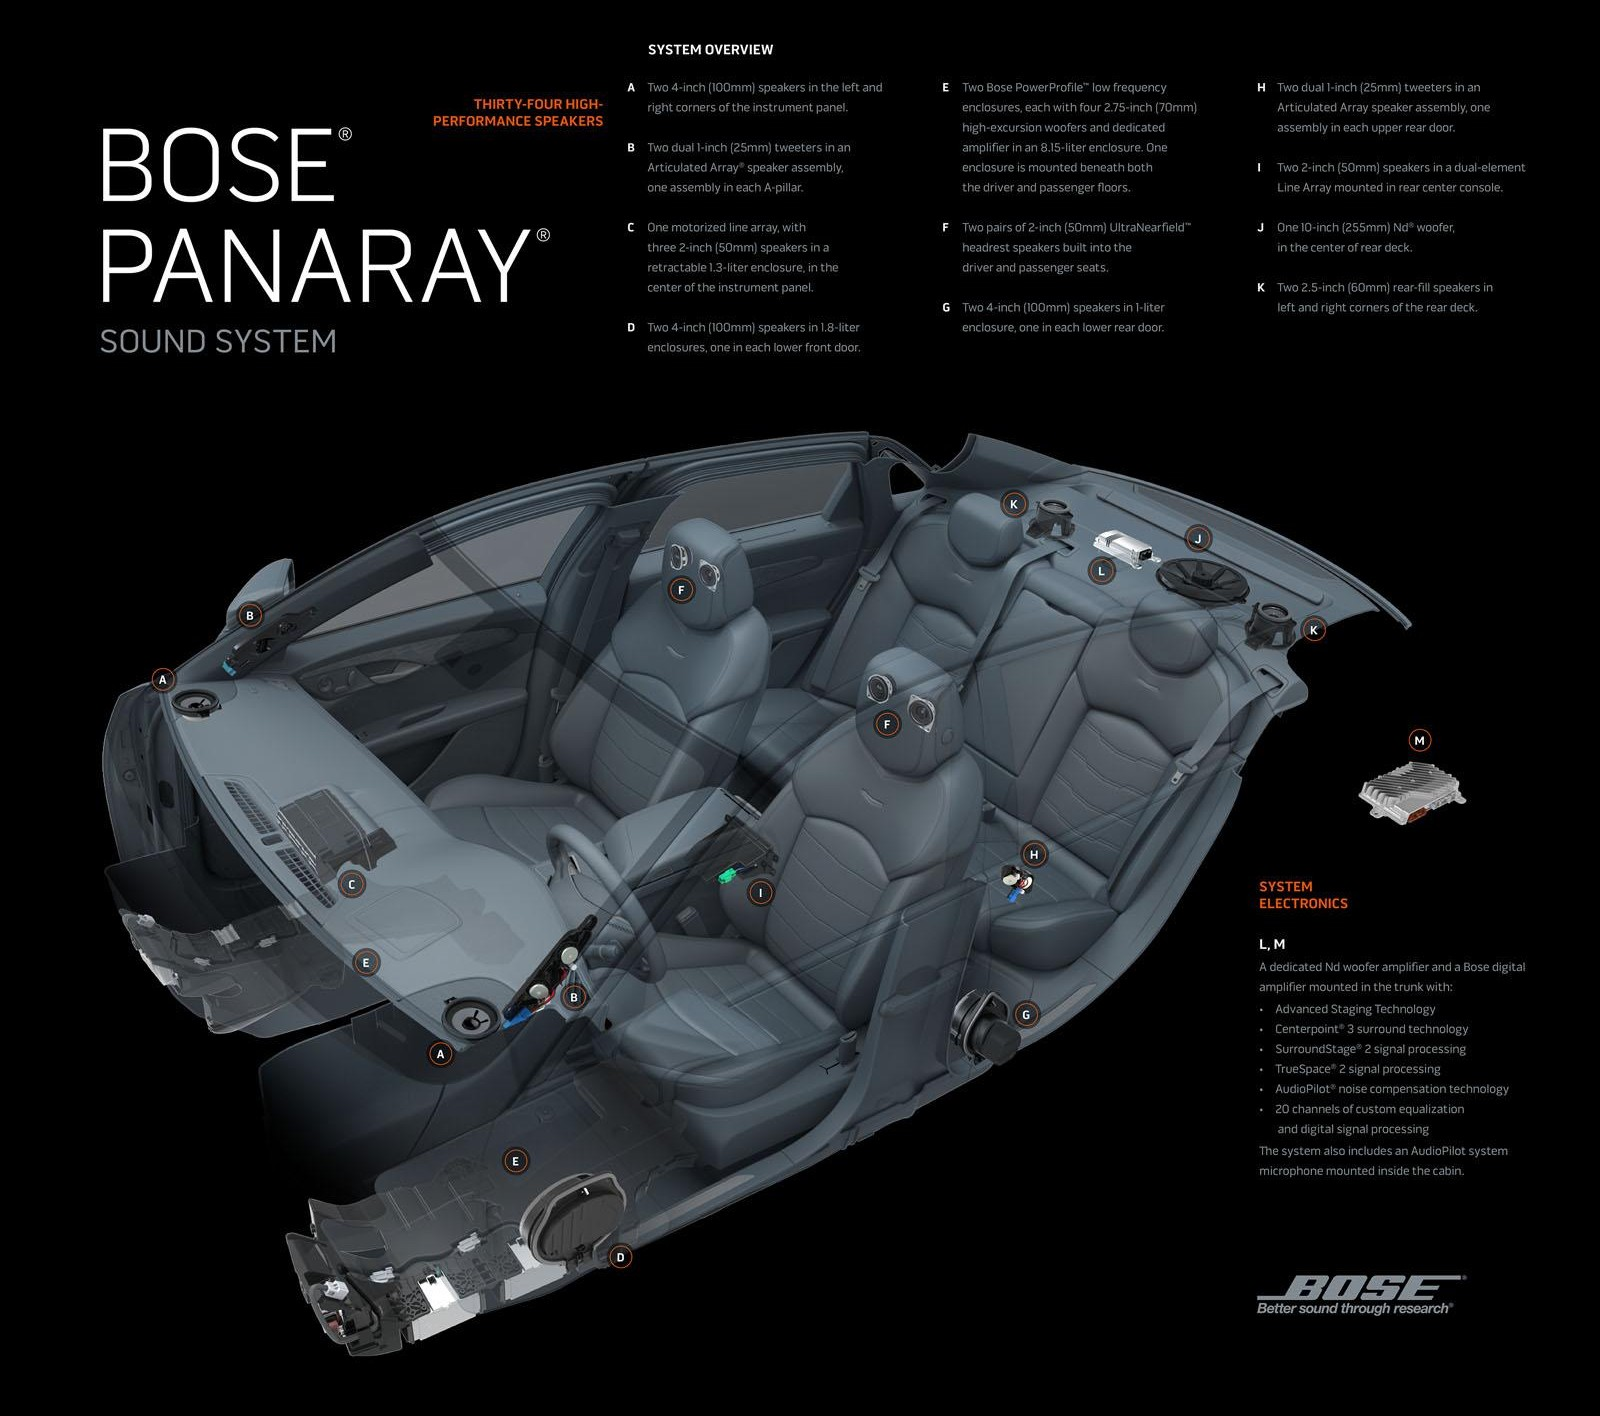 Bose Audio >> Cadillac CT6 to feature 34-speaker Bose audio system Image ...